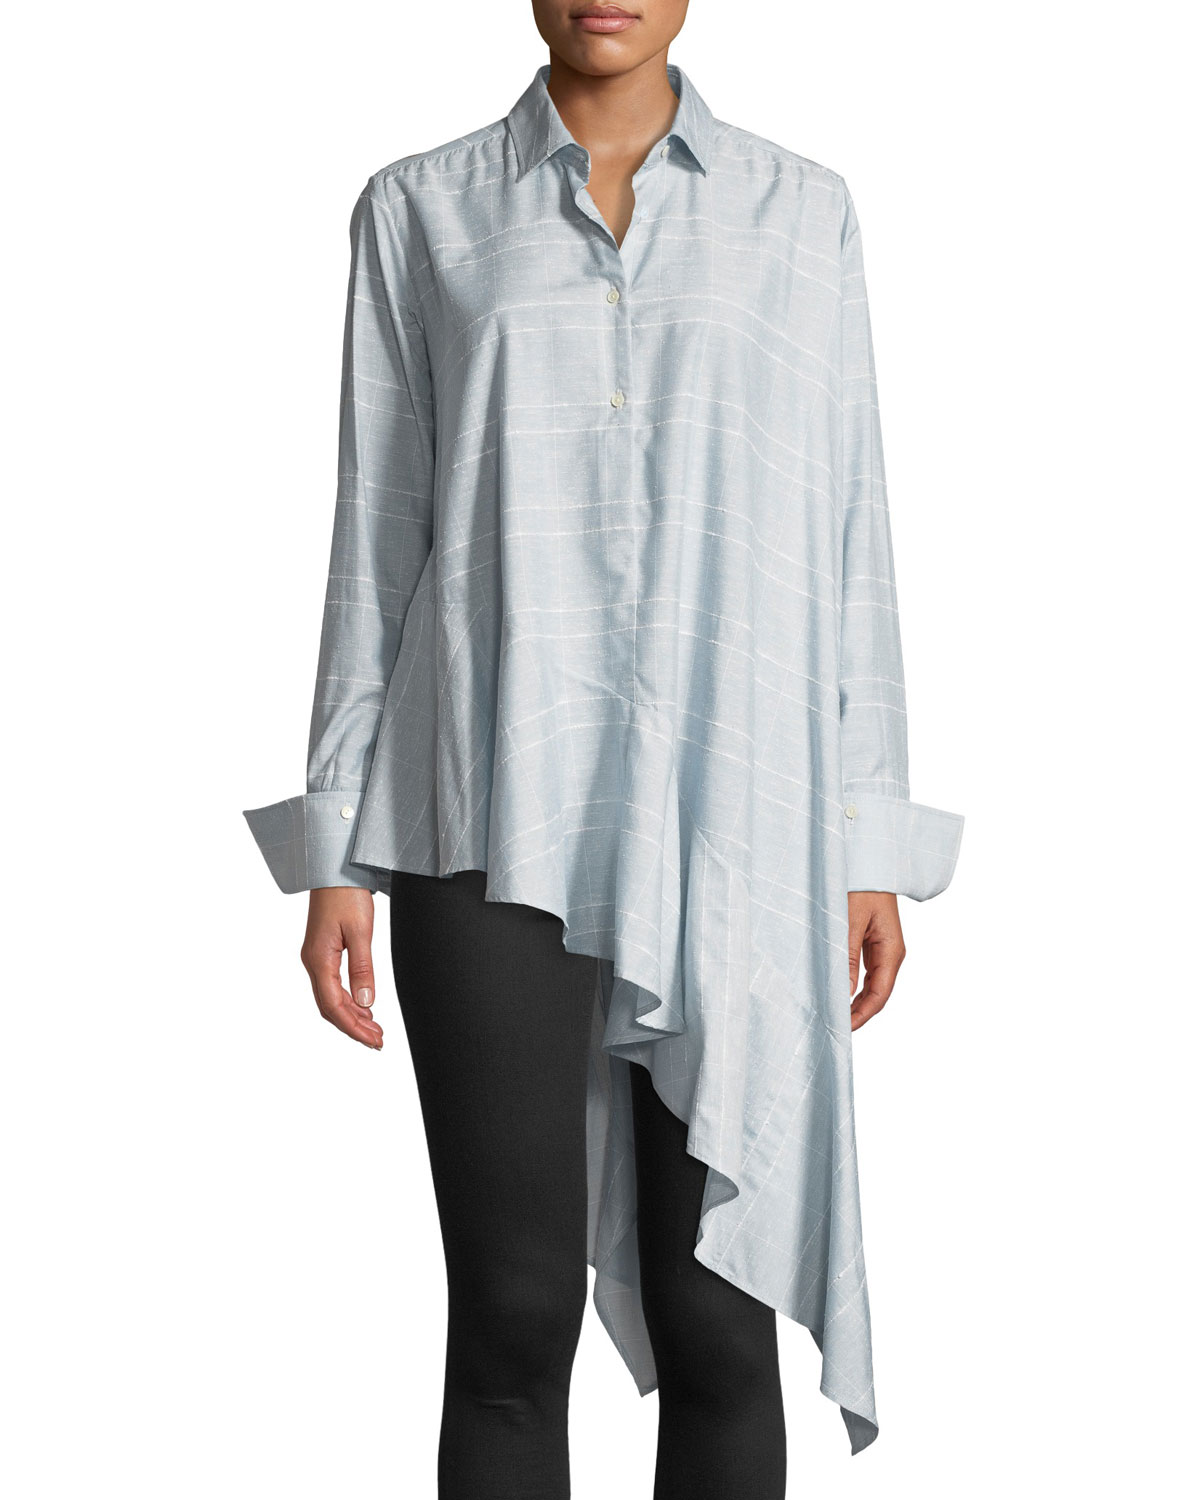 PALMER//HARDING Spicy Long-Sleeve Button-Front Asymmetric Shirt in Blue Pattern